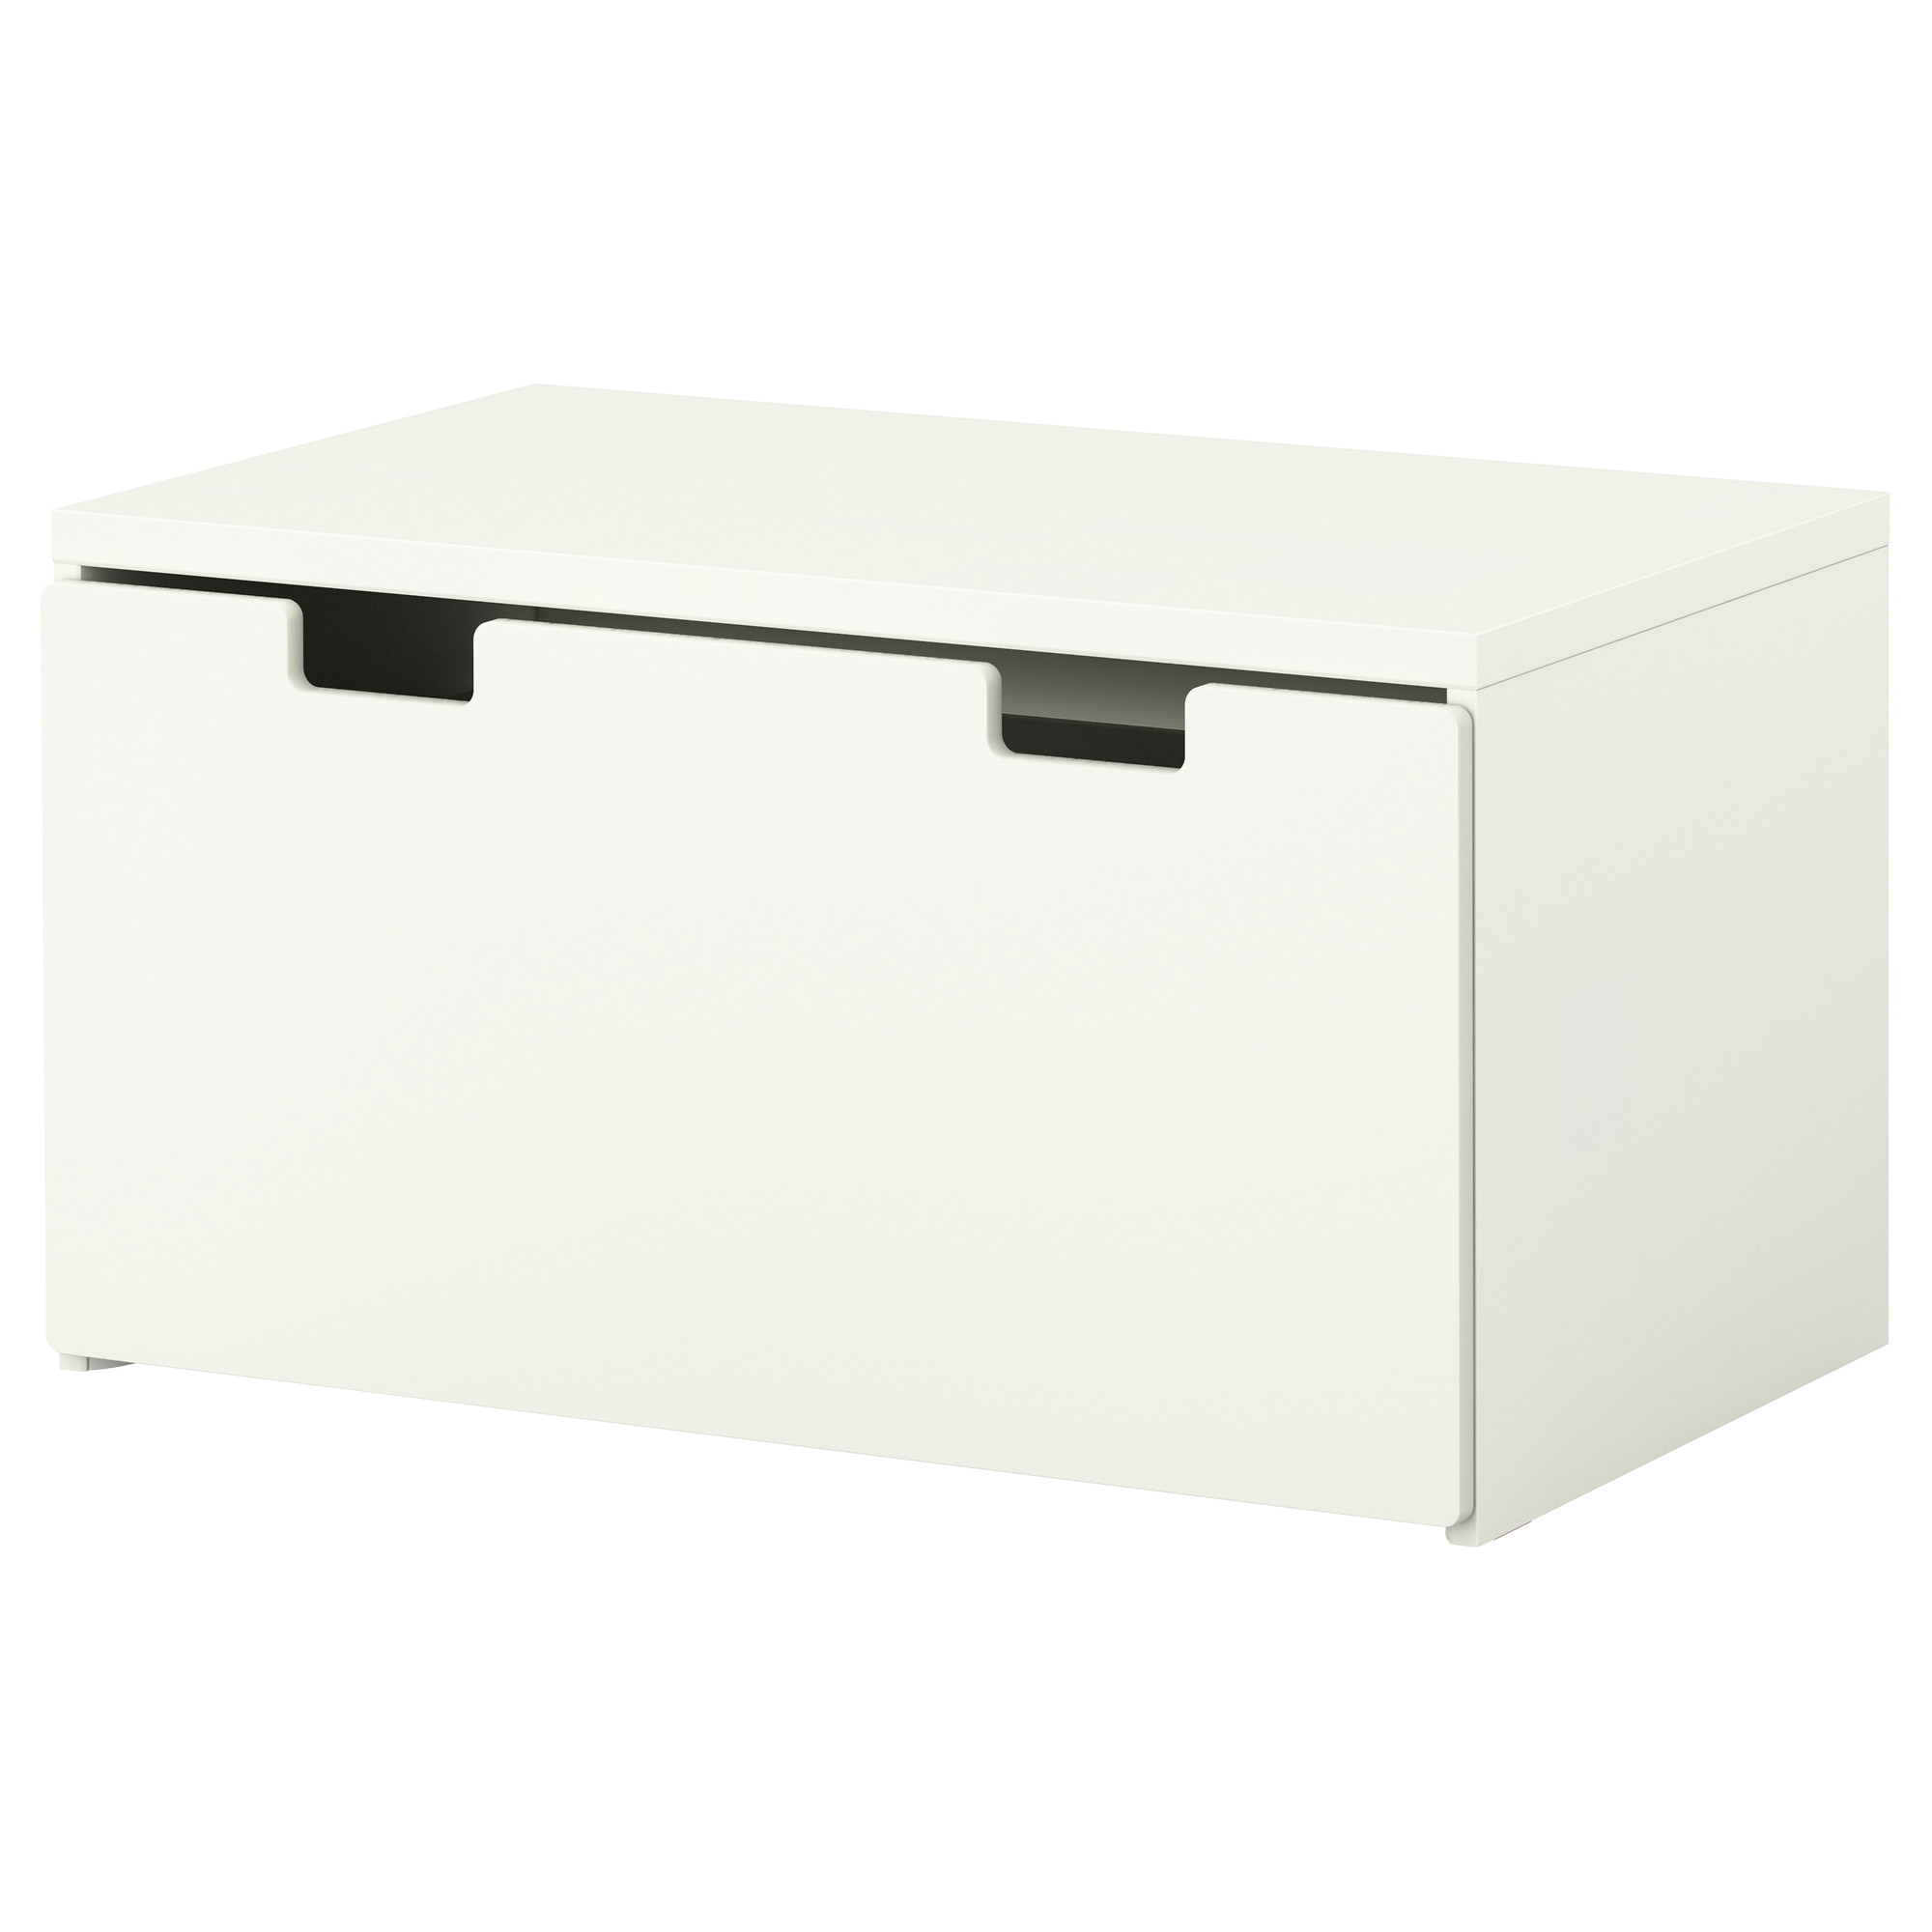 Stuva banco con caj n for Bureau coffre 3 en 1